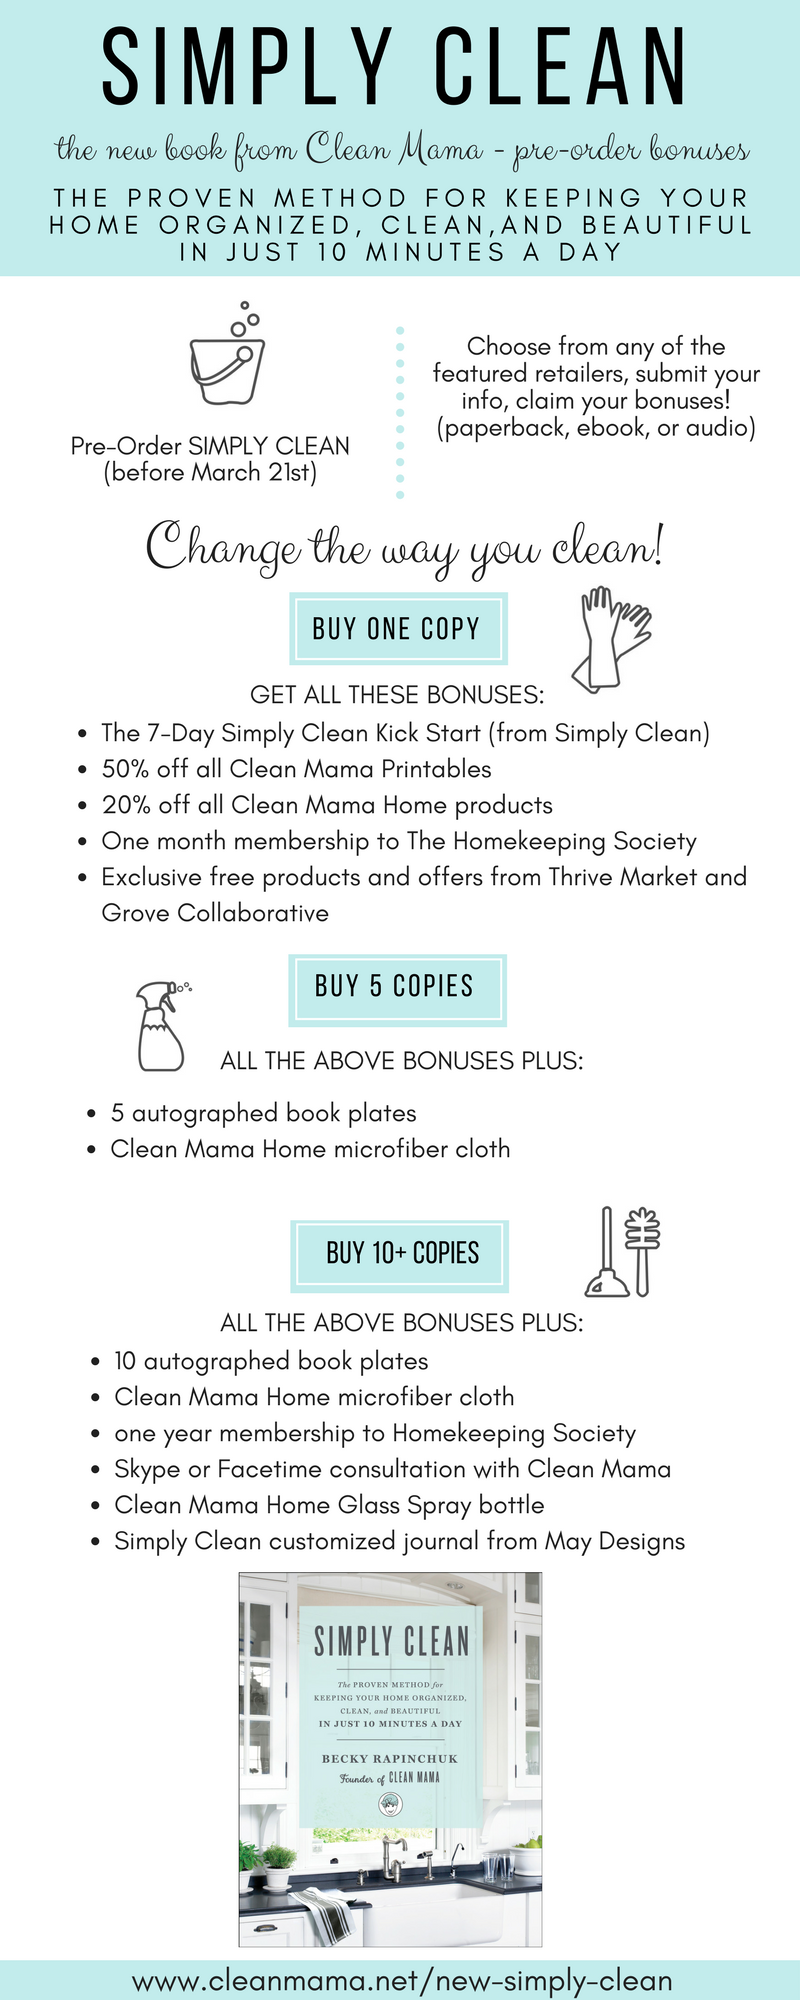 You guys! I'm so excited to share the pre-order bonuses for Simply Clean with you today.First things first, I'd like to answer a couple questions I've heard from readers about Simply Clean and then we can chat about the fab bonuses and freebies (over $50 value for purchasing ONE book)! And yes, if you already... (read more...)